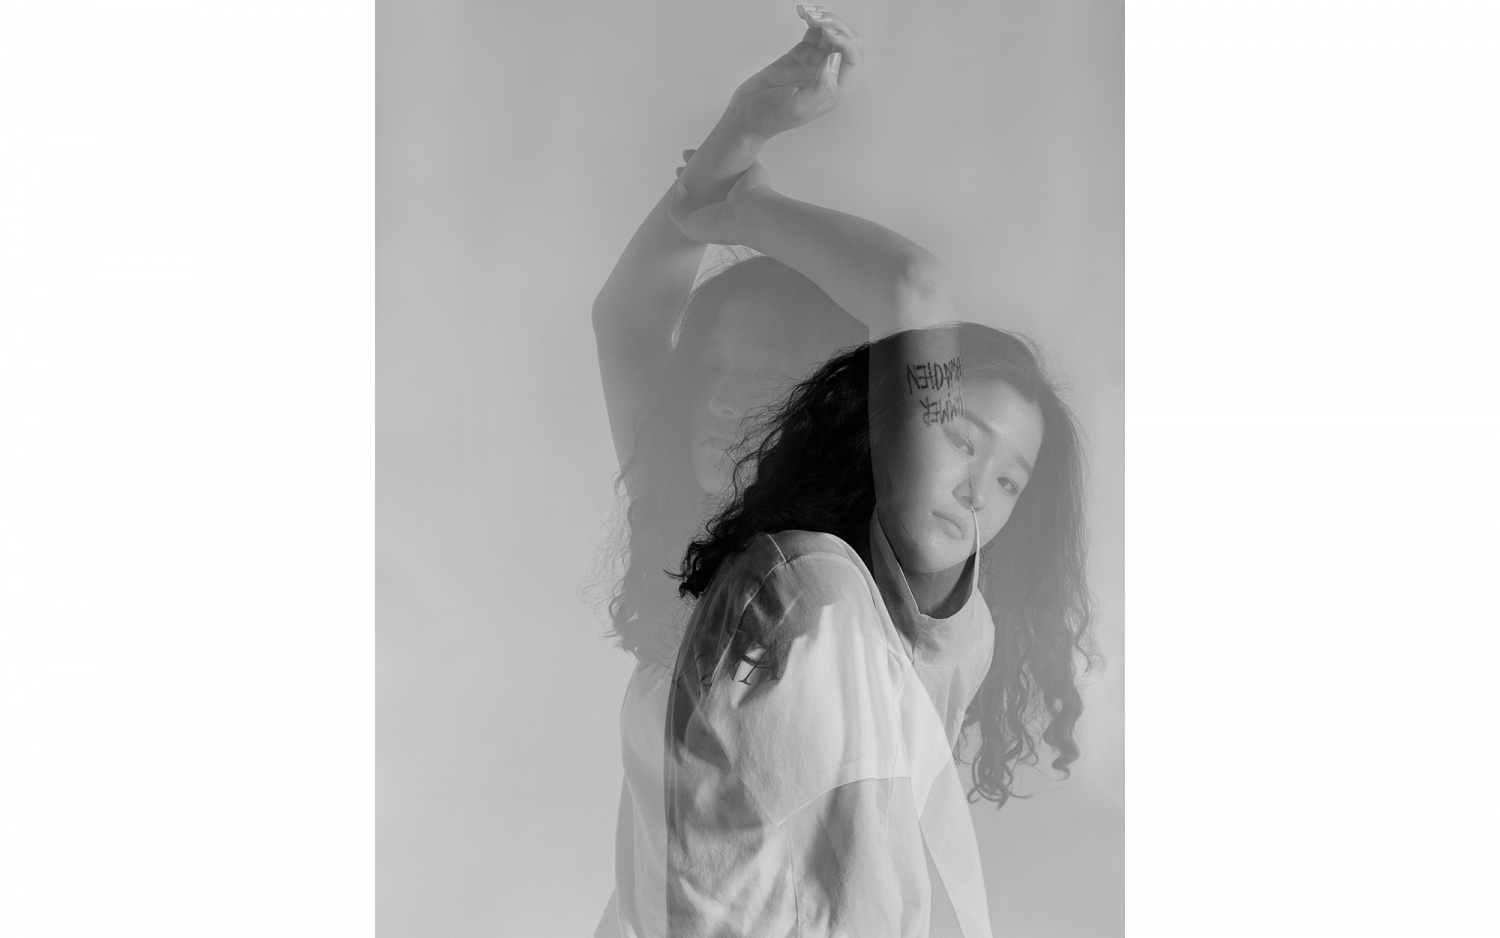 Black and white, double-exposed photo of young woman.